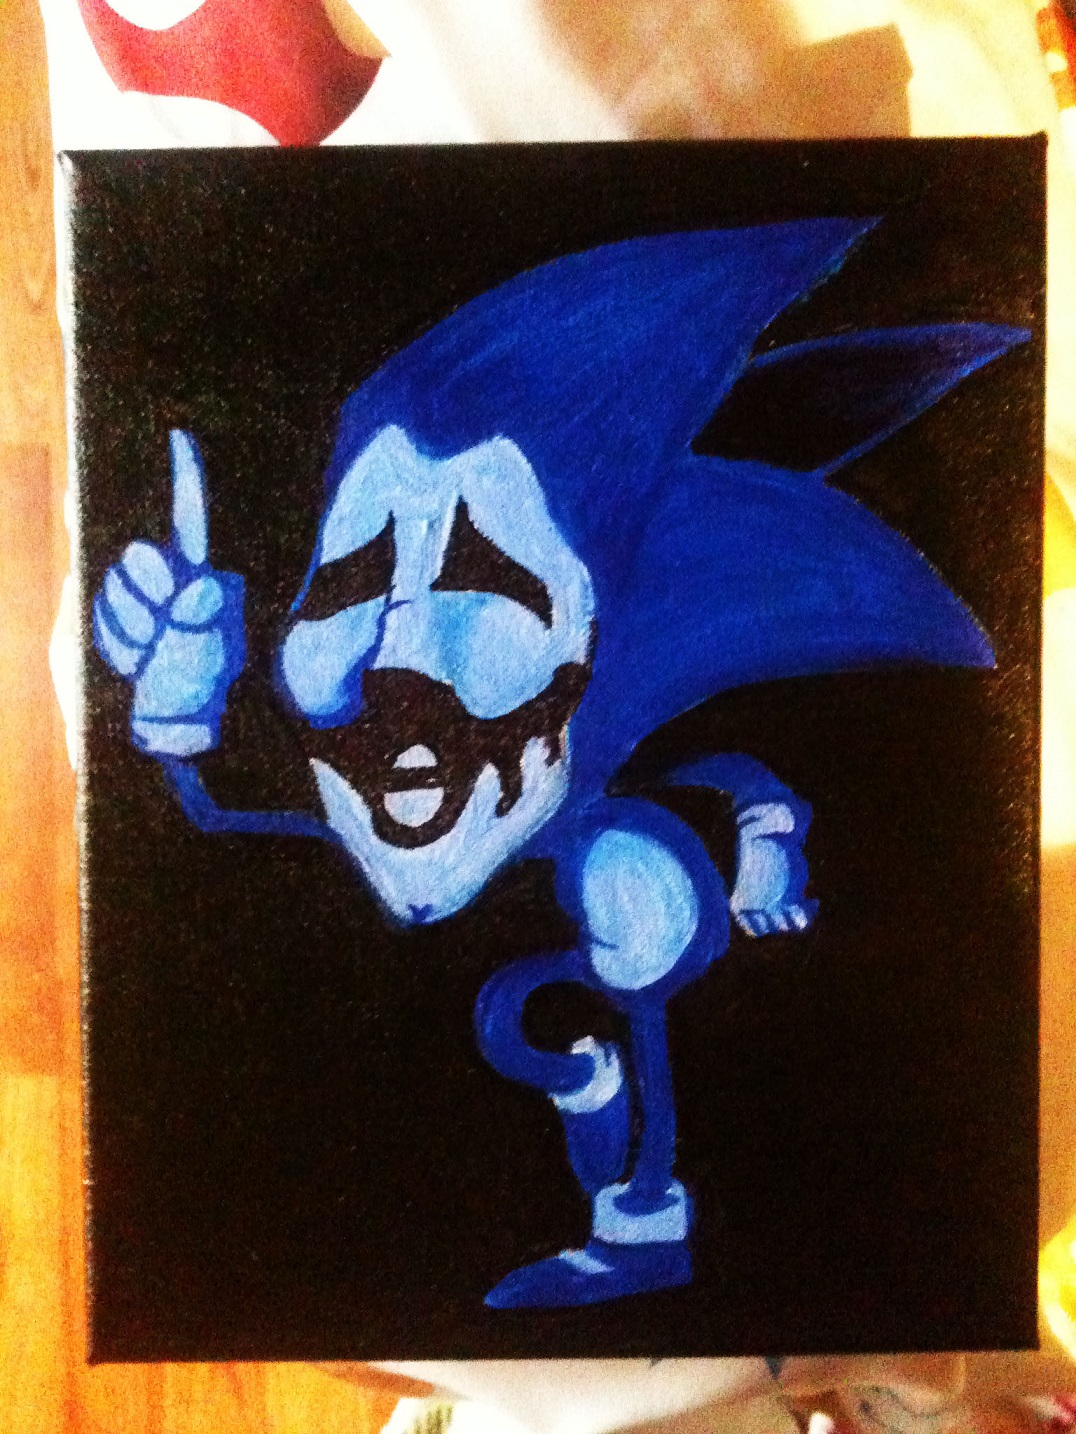 Creepy Sonic Painting by doublemaximus on Newgrounds